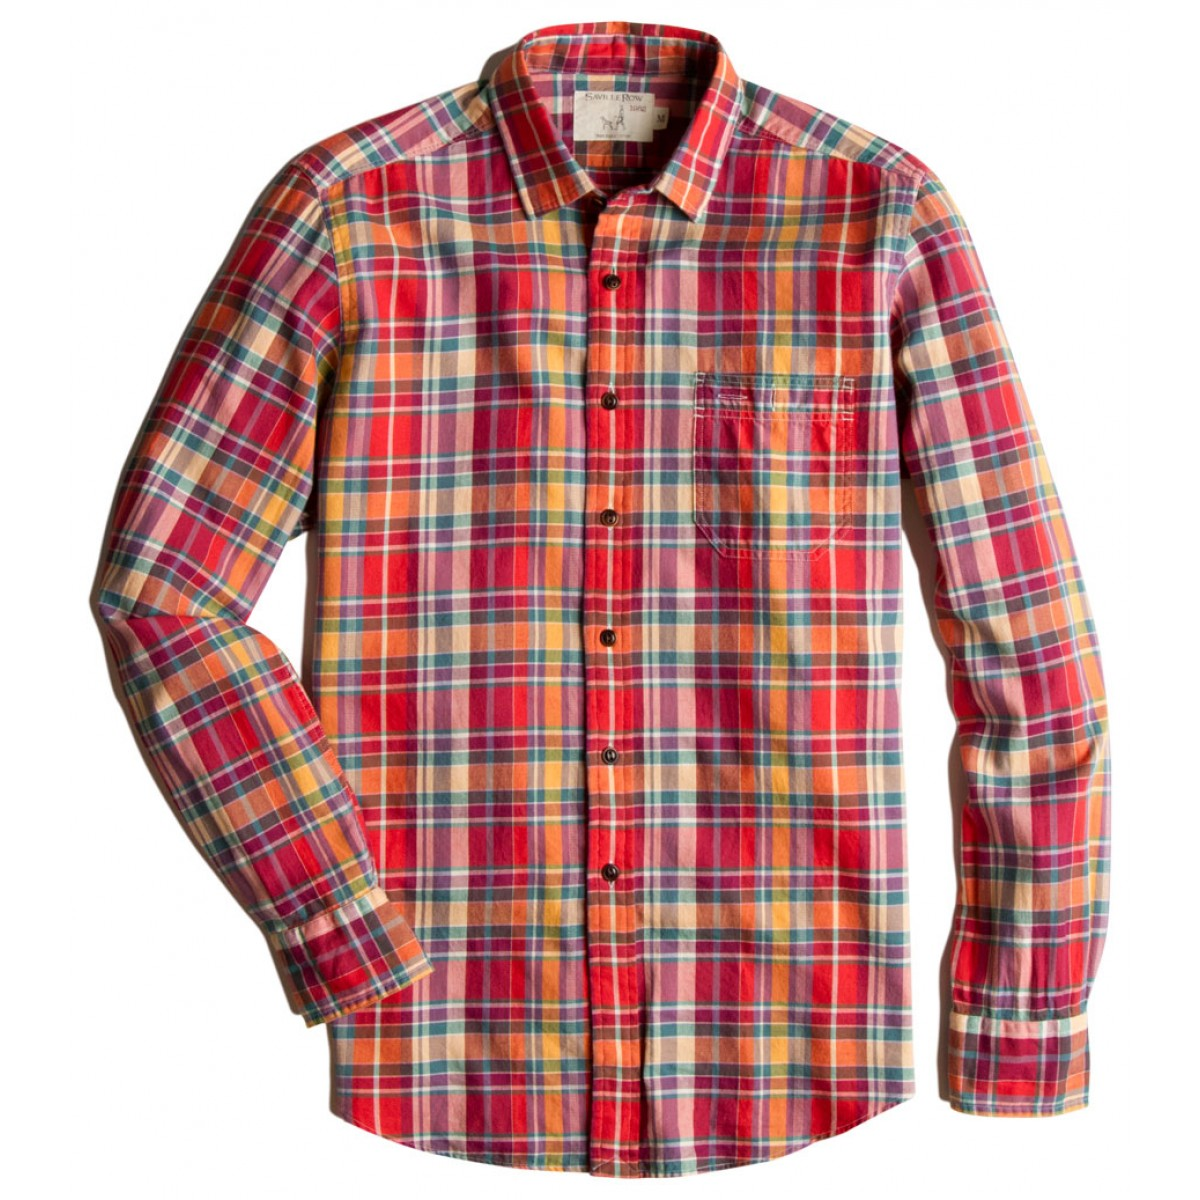 camisa sport ftsia m/l worker2 anchorage check